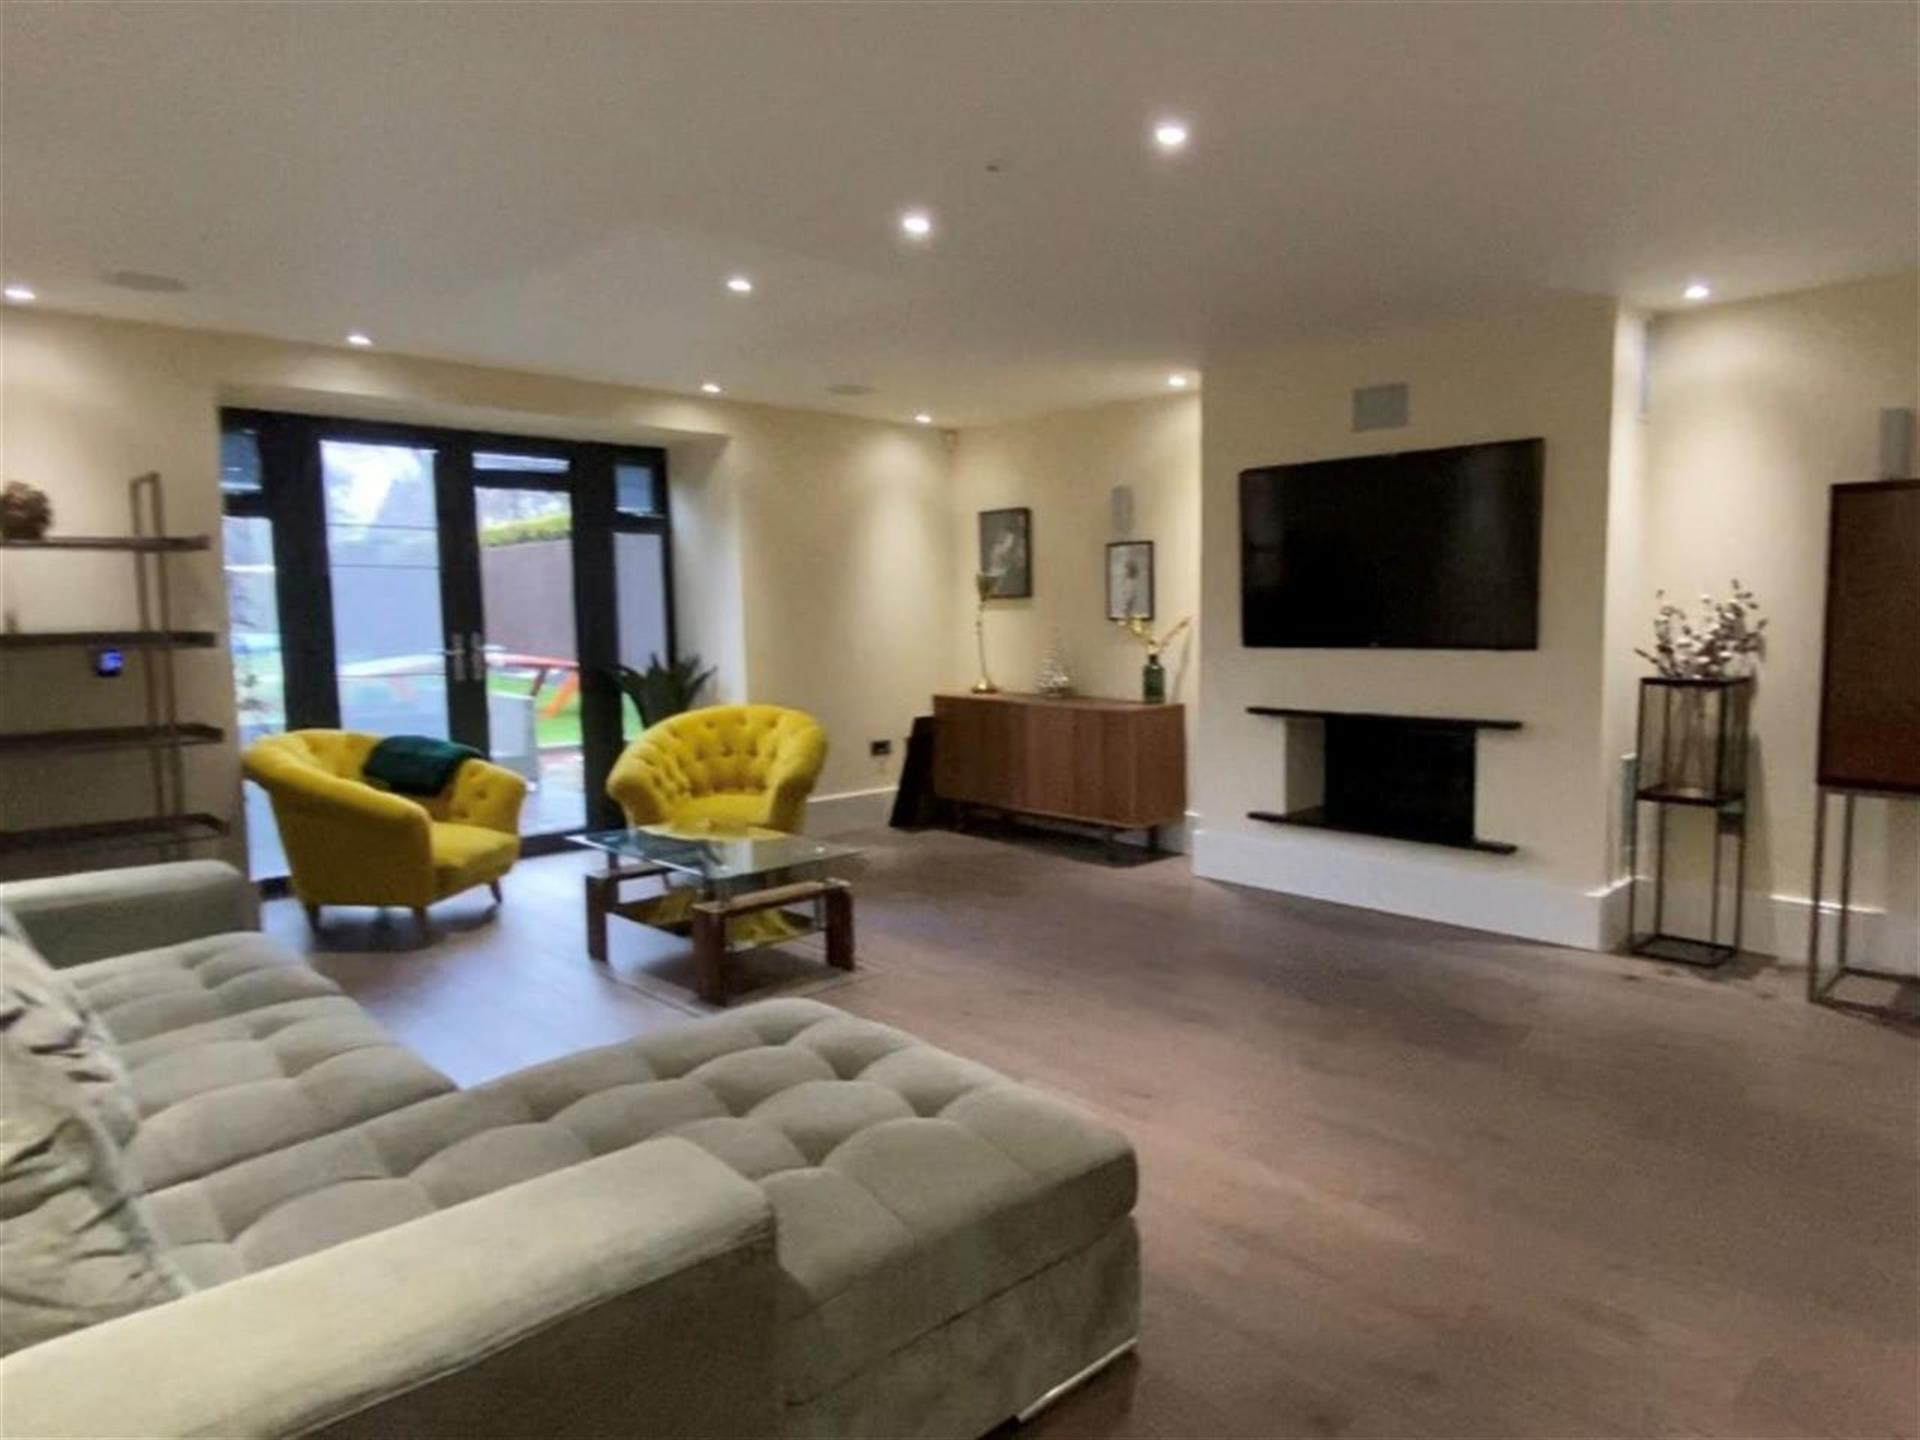 6 Bedroom Detached House For Sale - Family Living Room